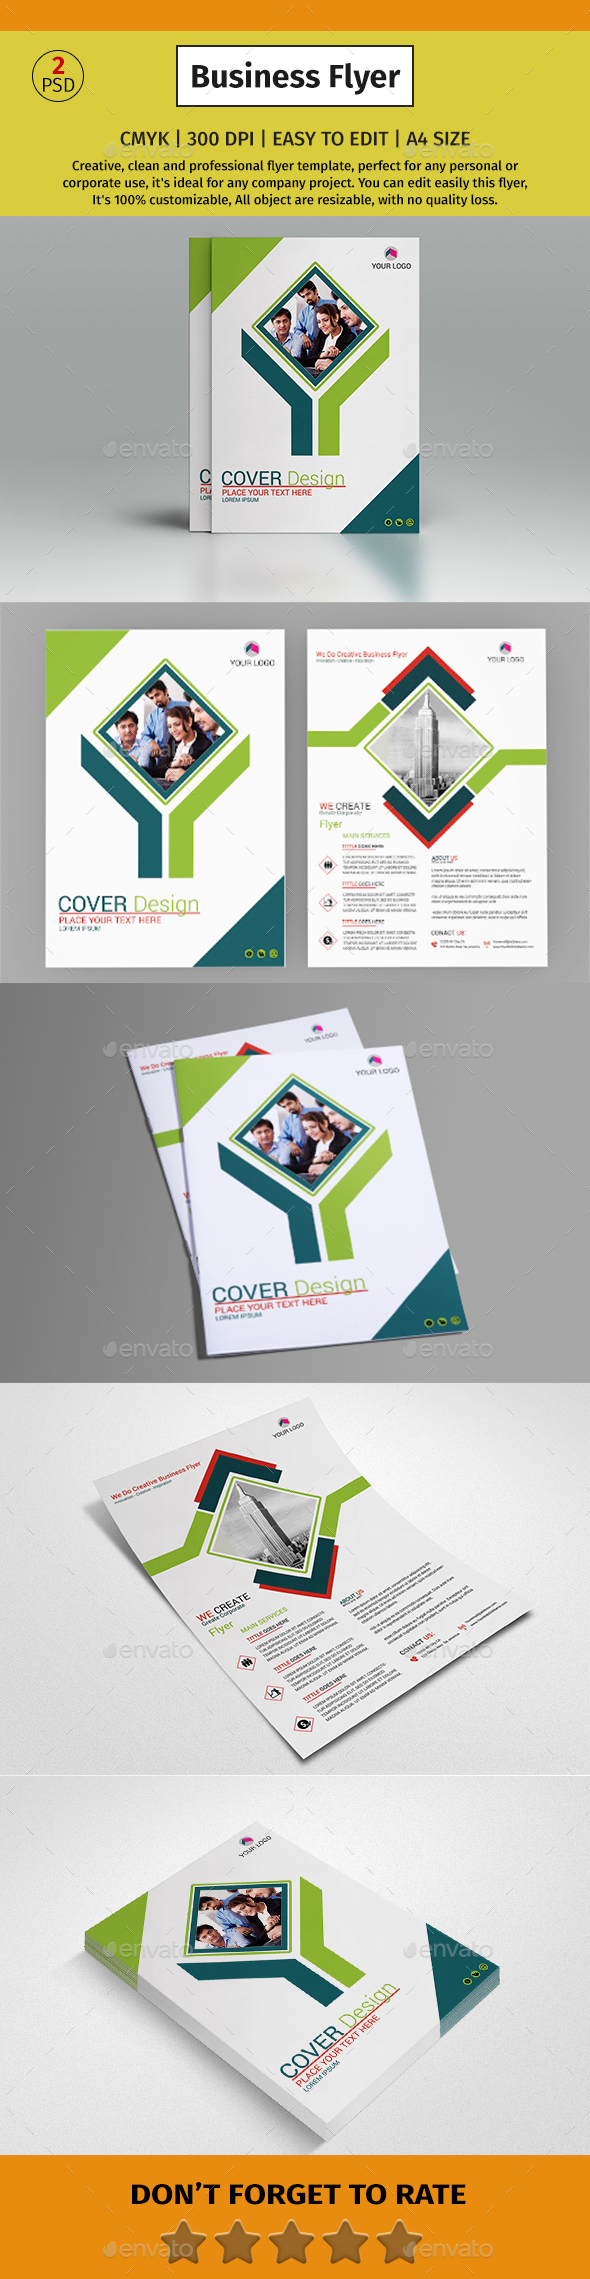 Corporate Business Flyer #50 - Corporate Flyers